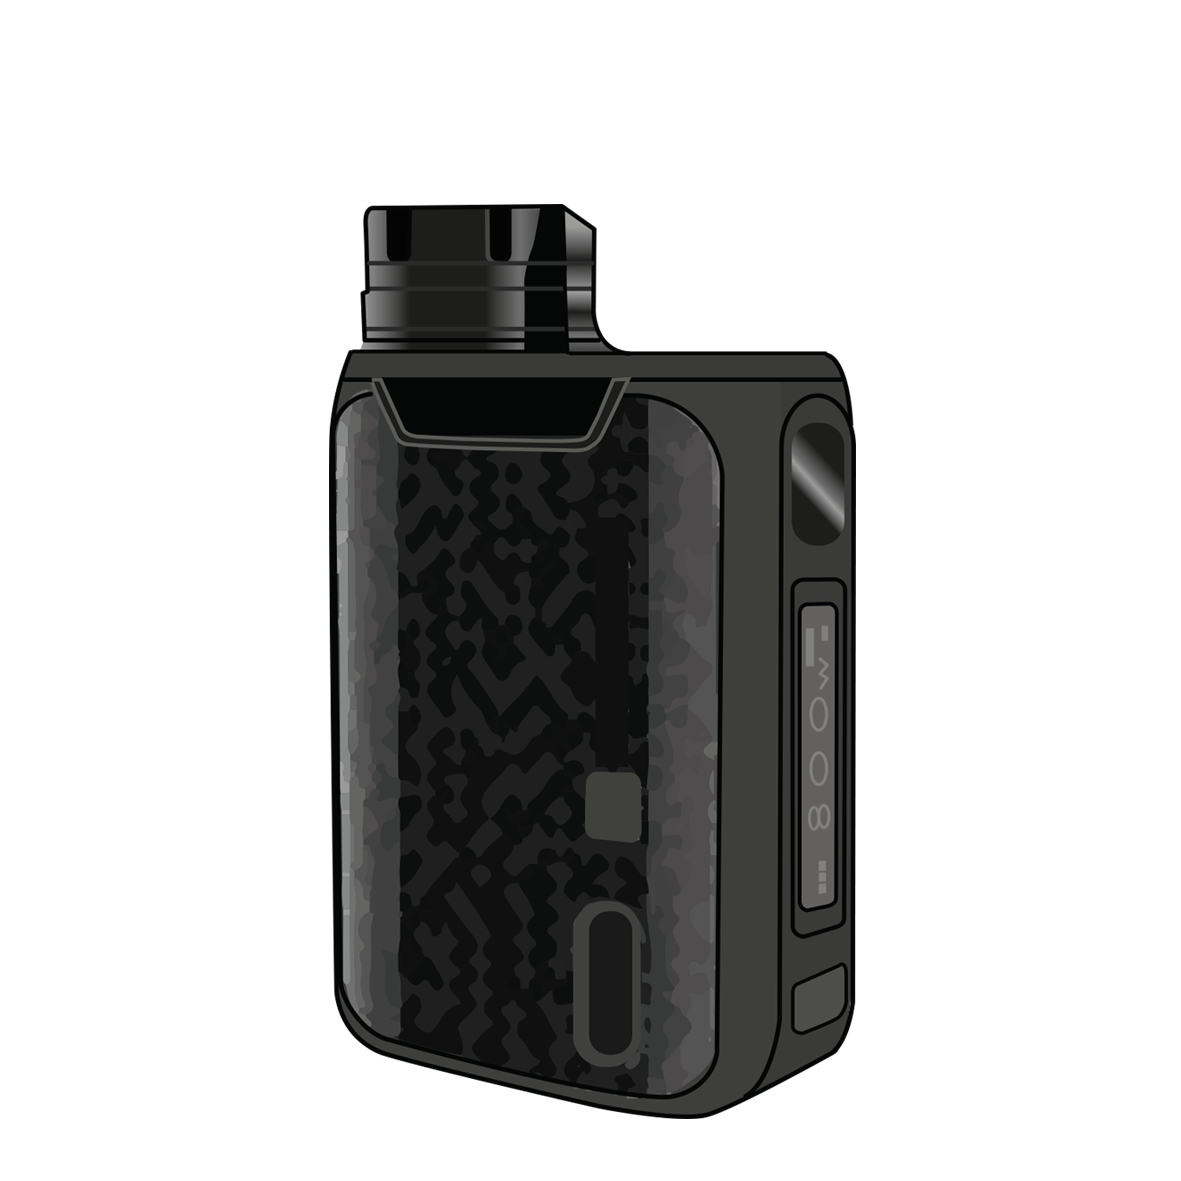 Mod with 1 Battery